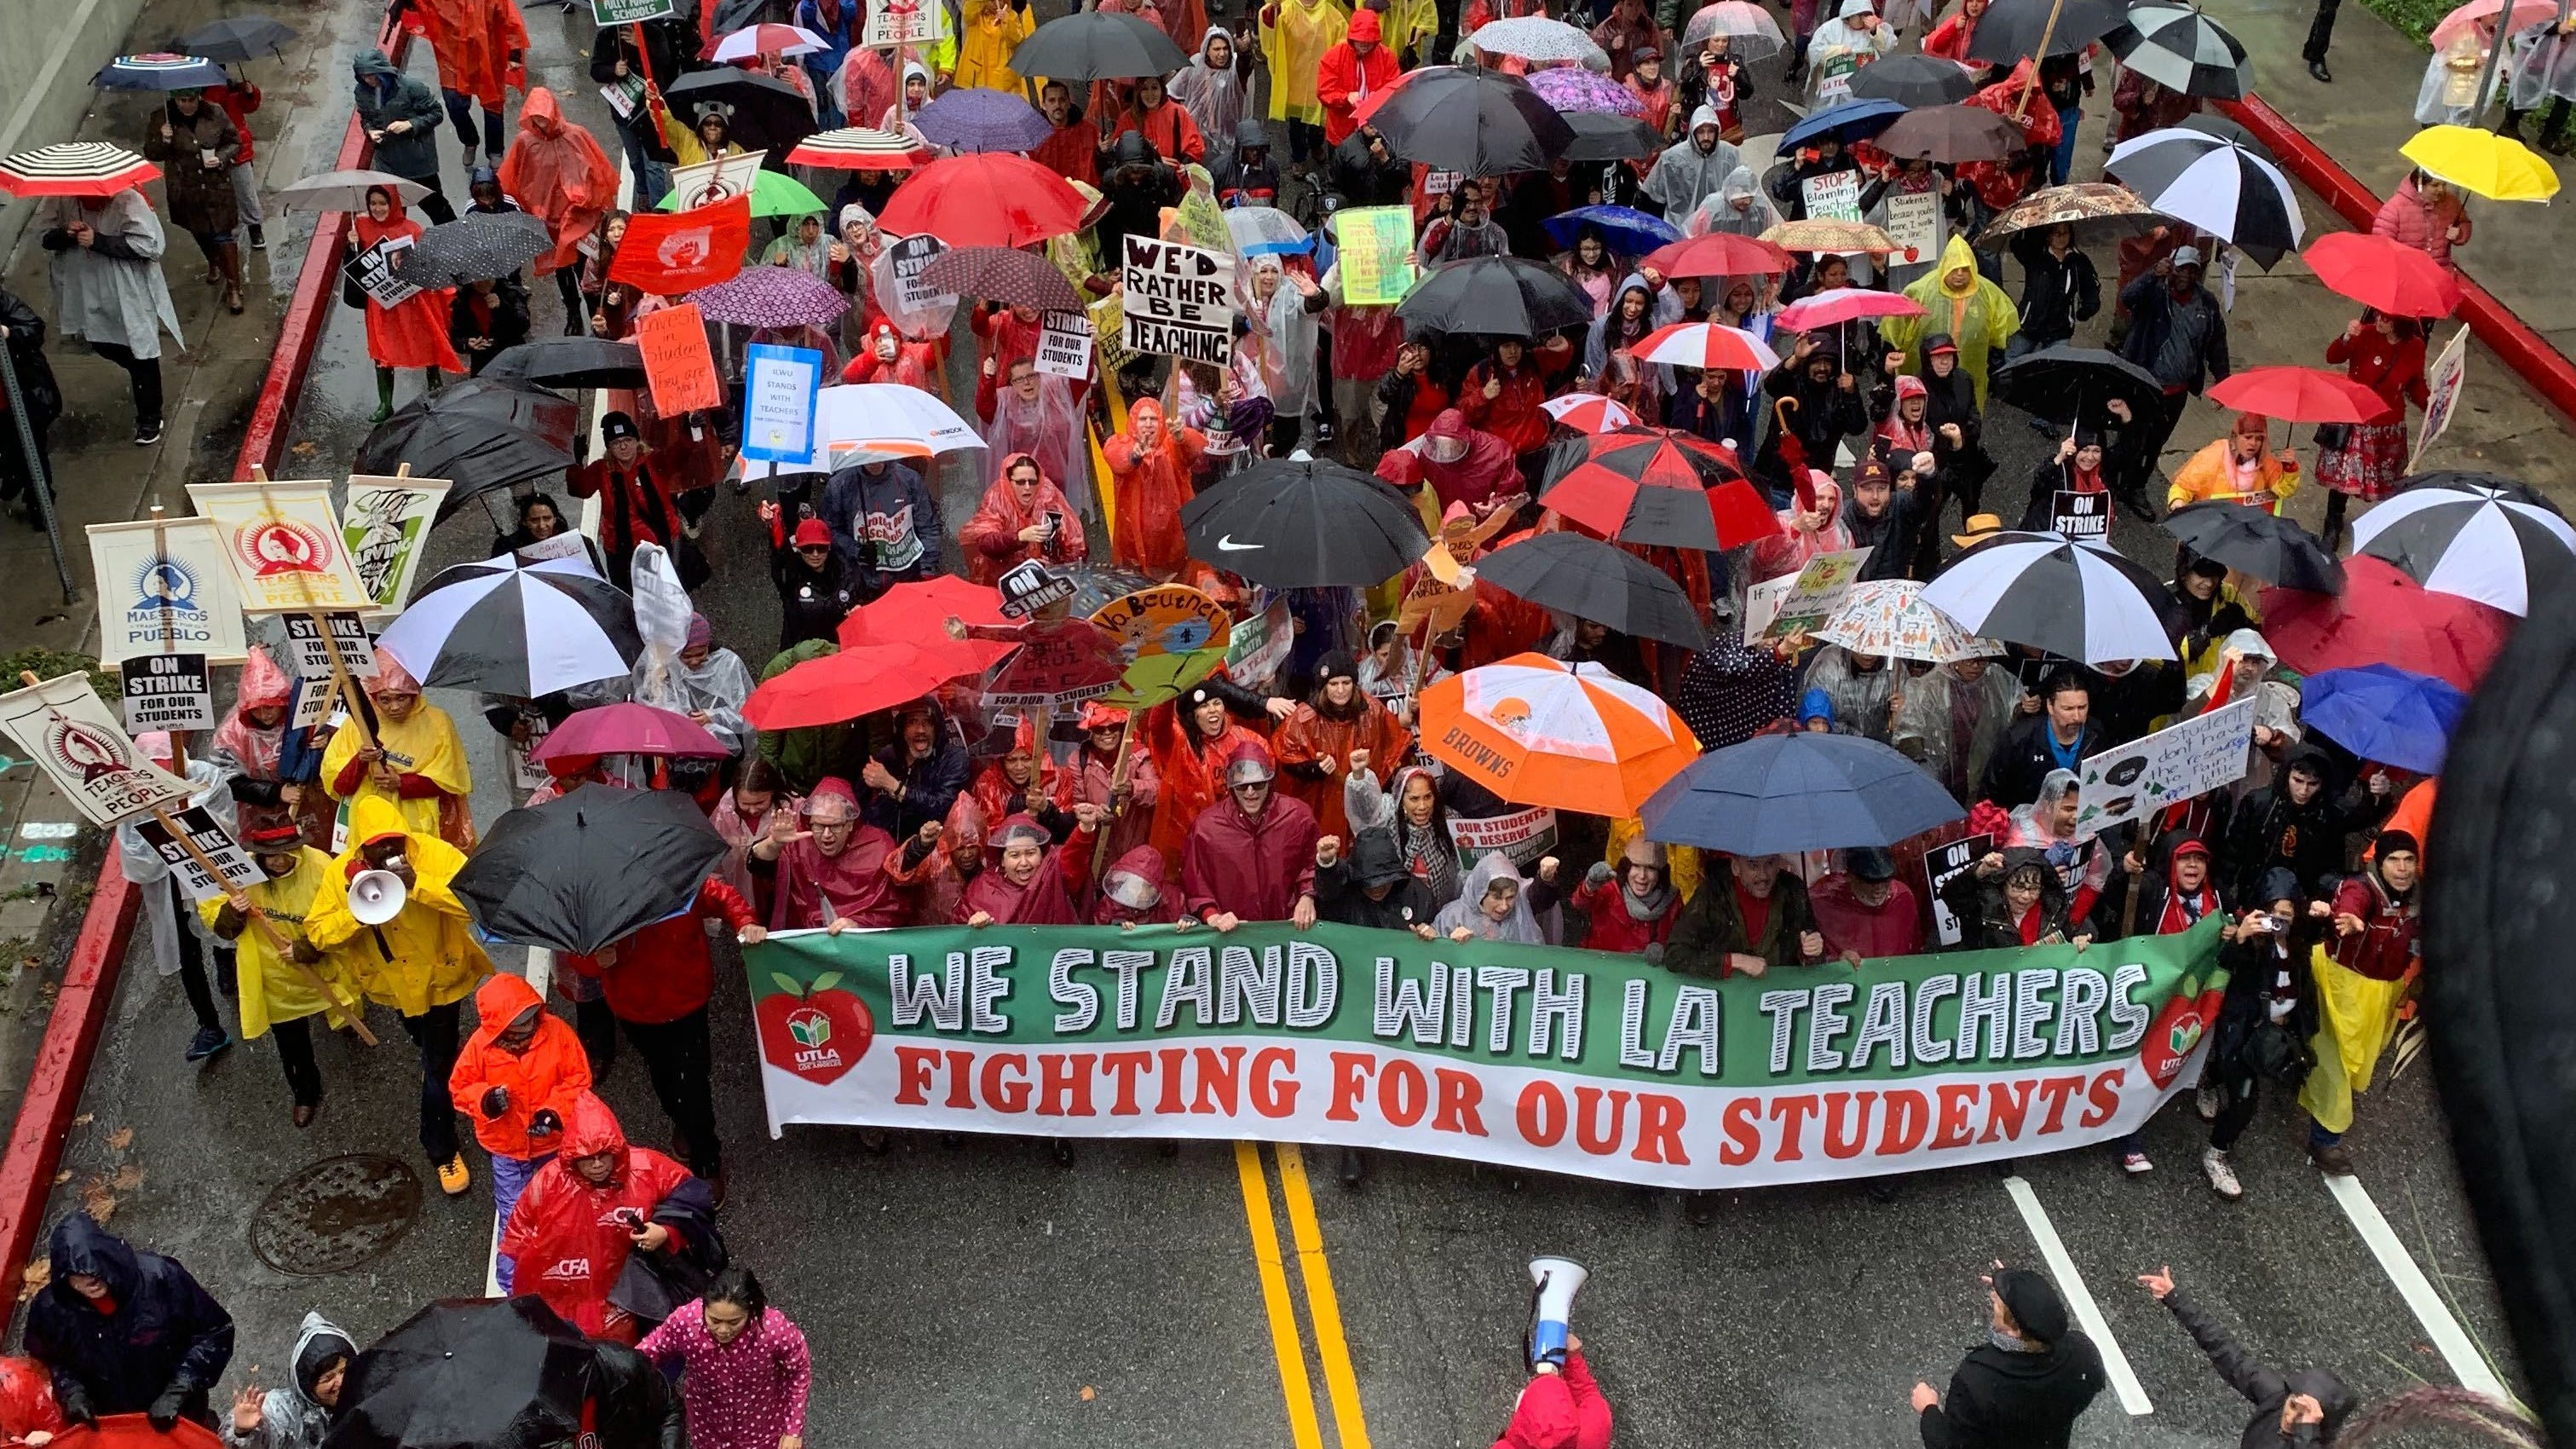 Los Angeles teachers during a city-wide teacher strike, Jan. 14, 2019 outside the Los Angeles Unified School District offices.